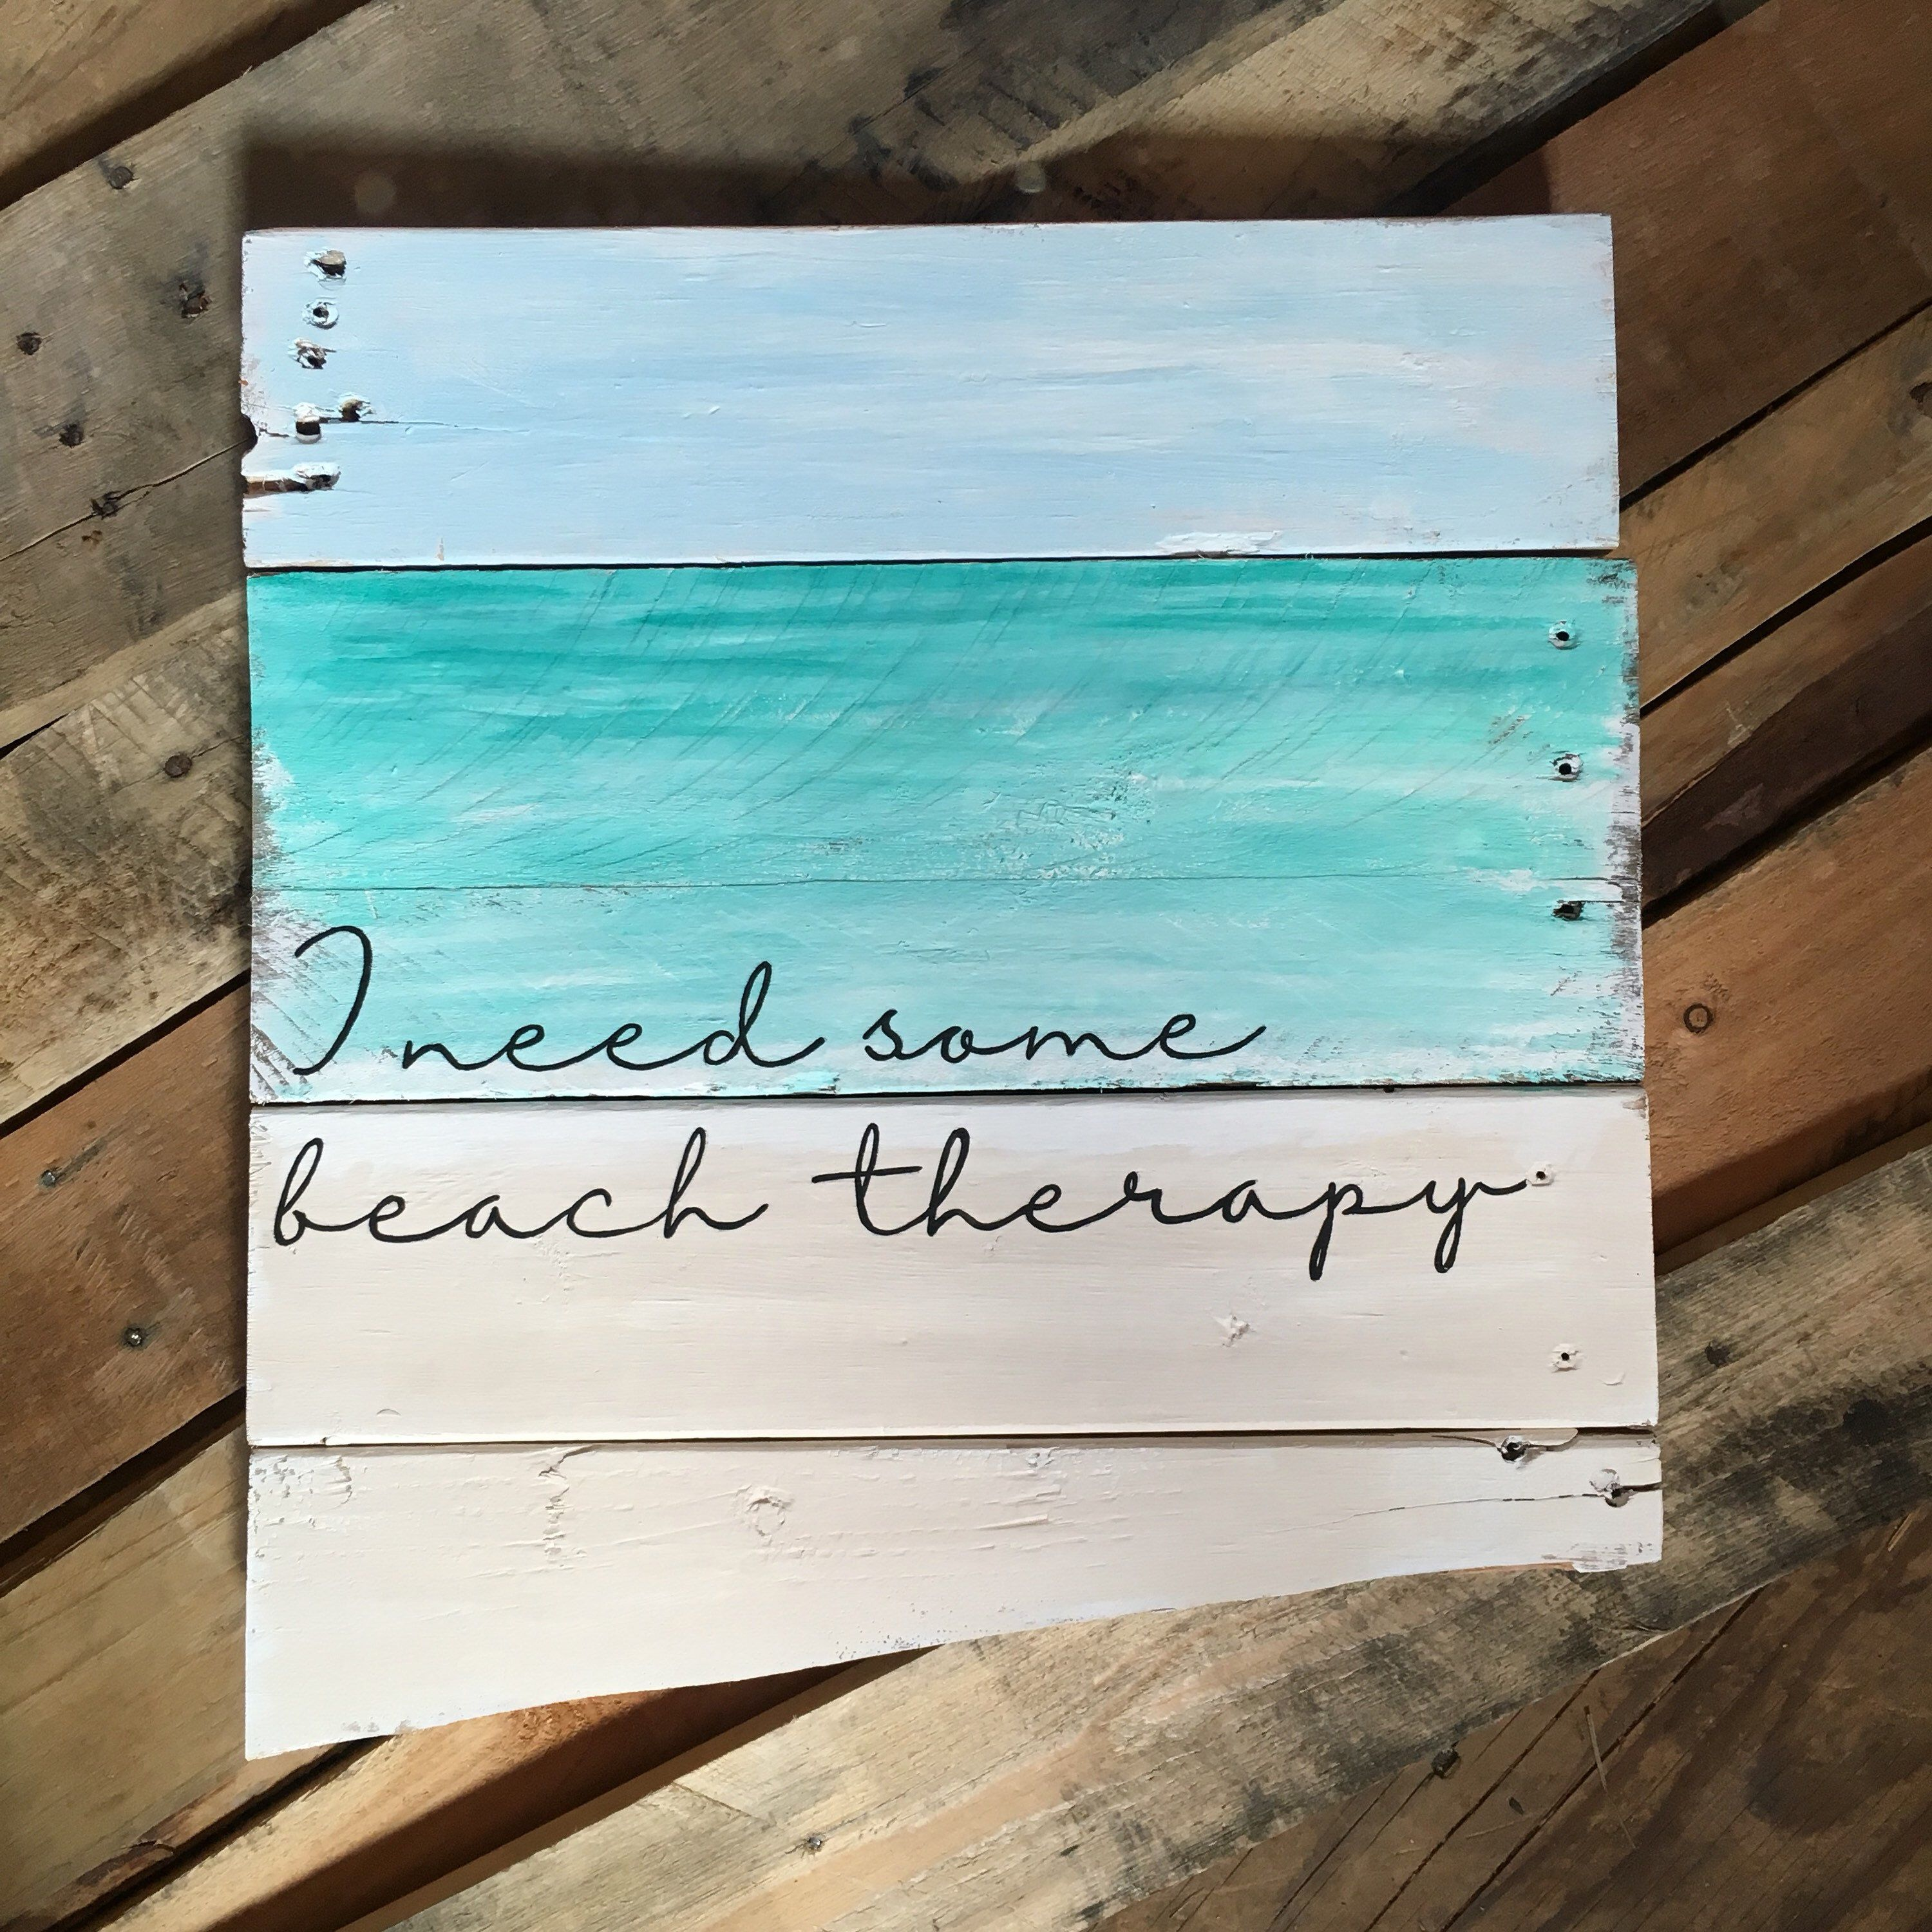 I Need Some Beach Therapy Pallet Sign From My Etsy Shop Https Www Etsy Com Listing 529051079 Beach Si Wooden Signs Diy Custom Wooden Signs Beach Signs Wooden